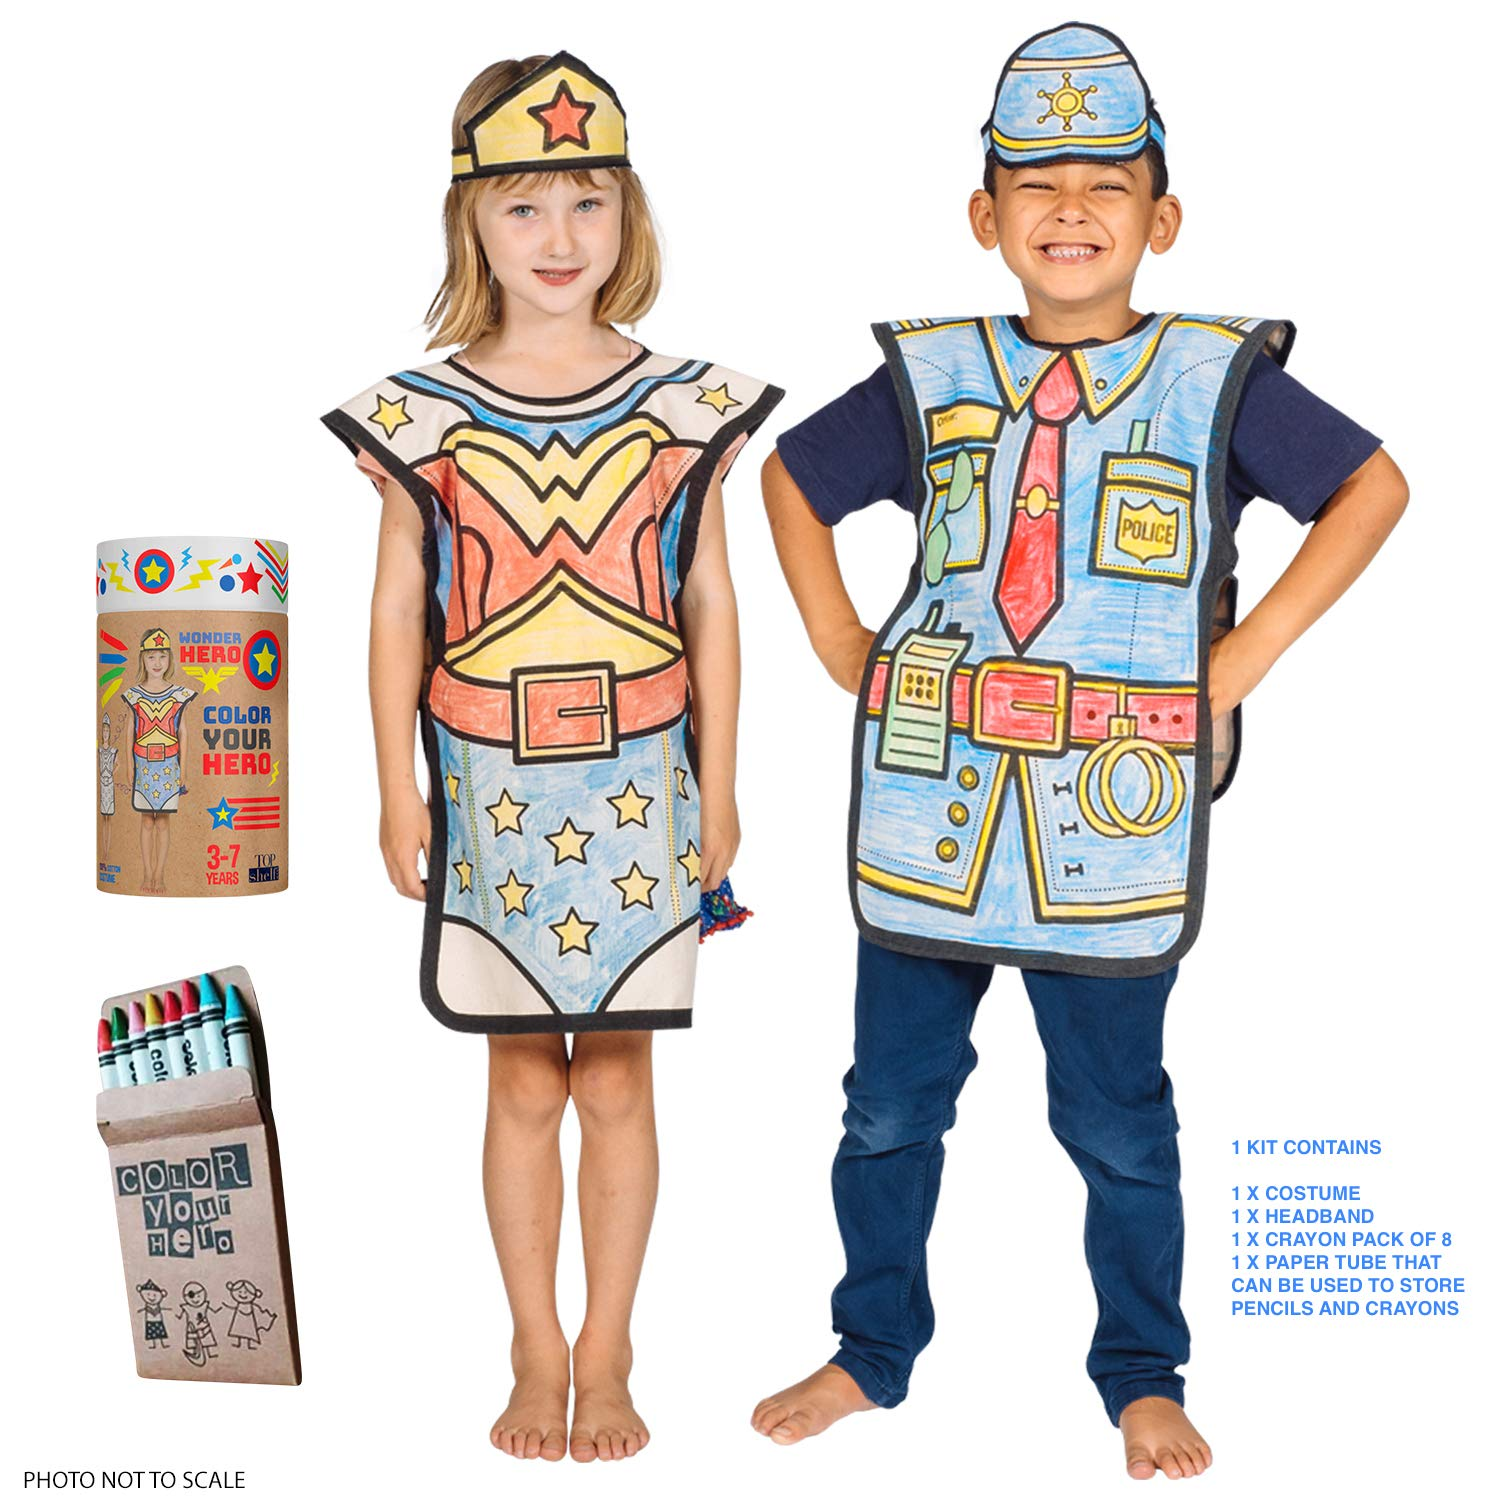 Police Officer Costume Kids Eco Coloring Set - 100% Cotton,8 Crayons, Reusable Eco Paper Tube for Children 3-7 Years